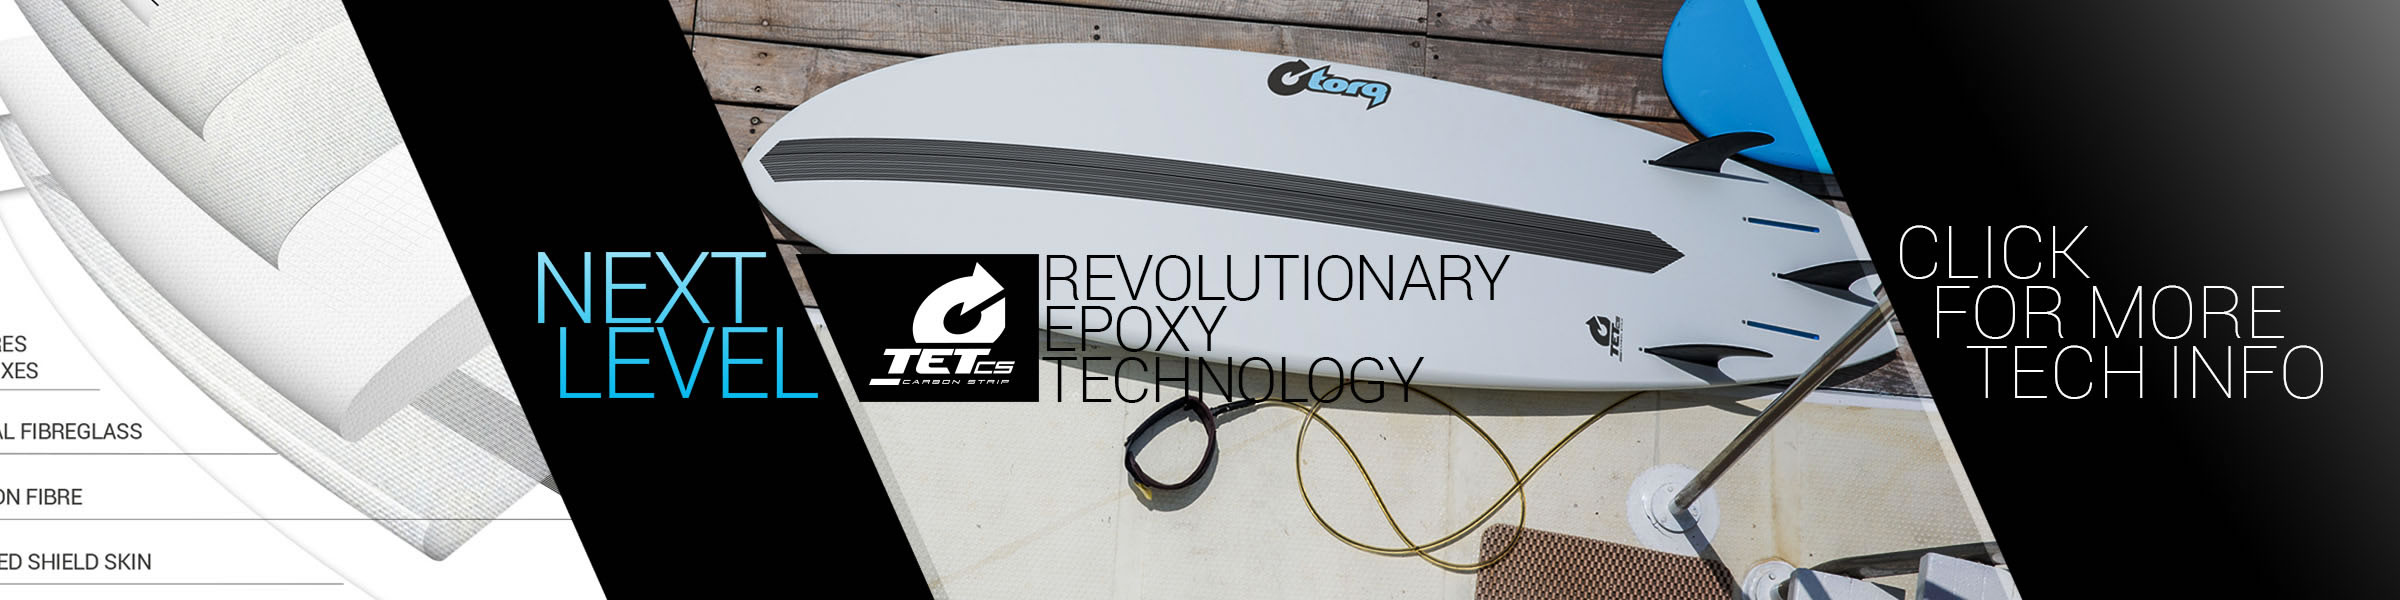 TET-CS Technology click here